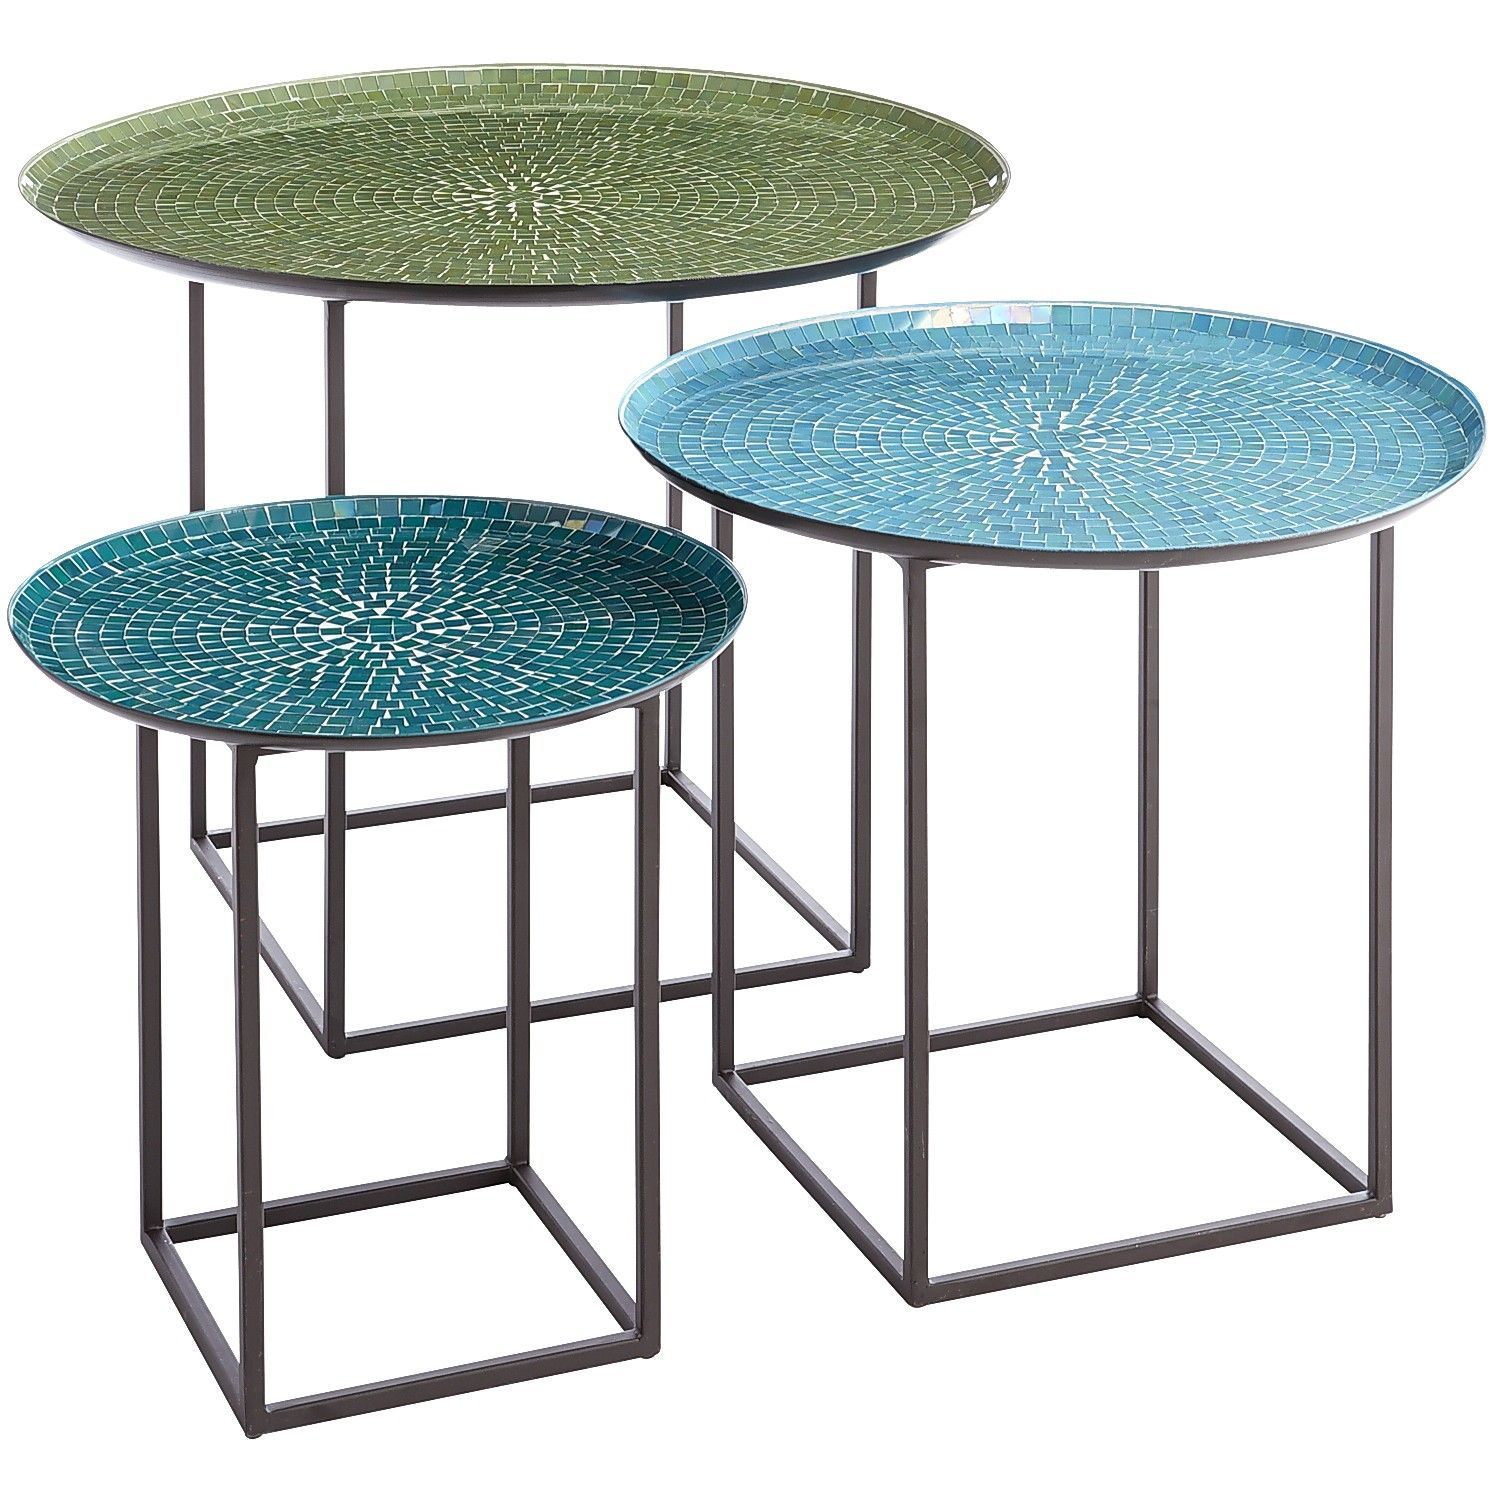 annabelle blue piece mosaic coffee table set home improvement outdoor side ethan allen ladder back chairs with bbq built gray wash turquoise rattan drum dimensions dining foyer